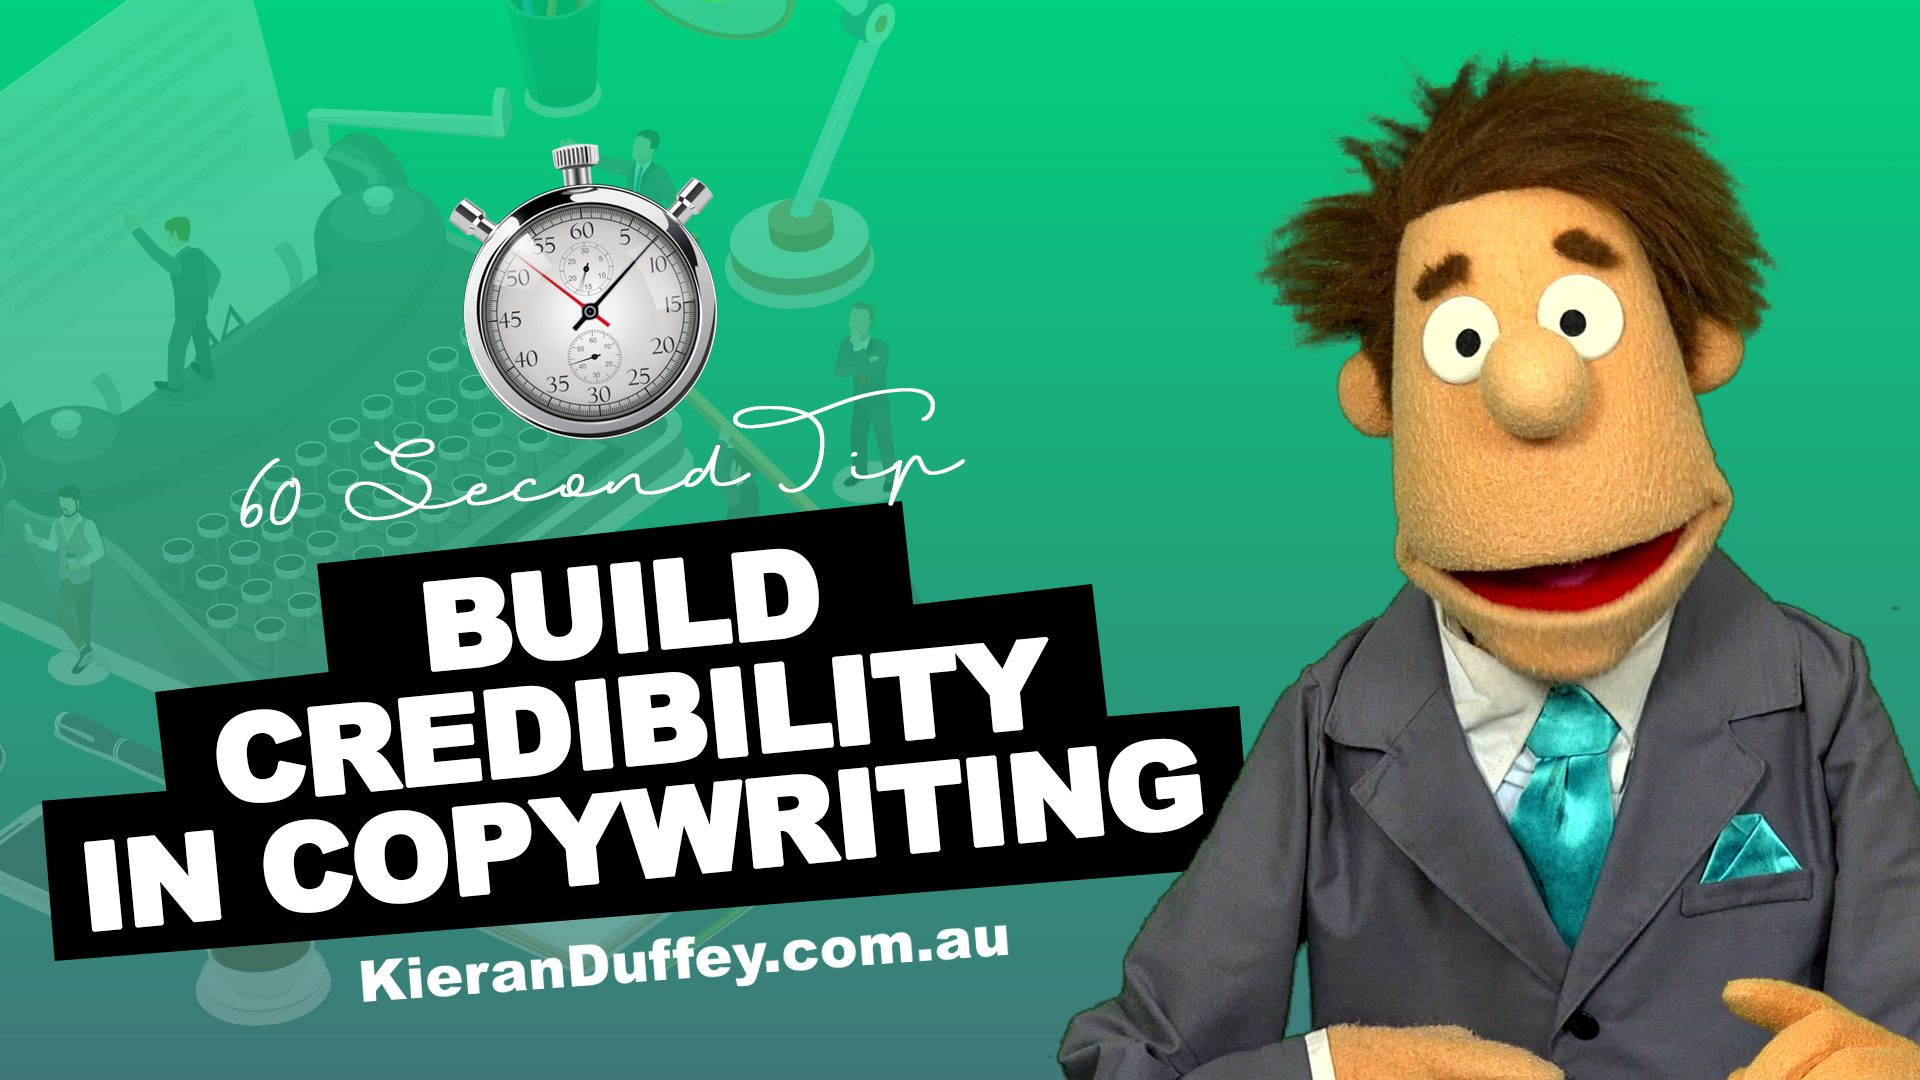 Video explaining importance of building credibility in copywriting